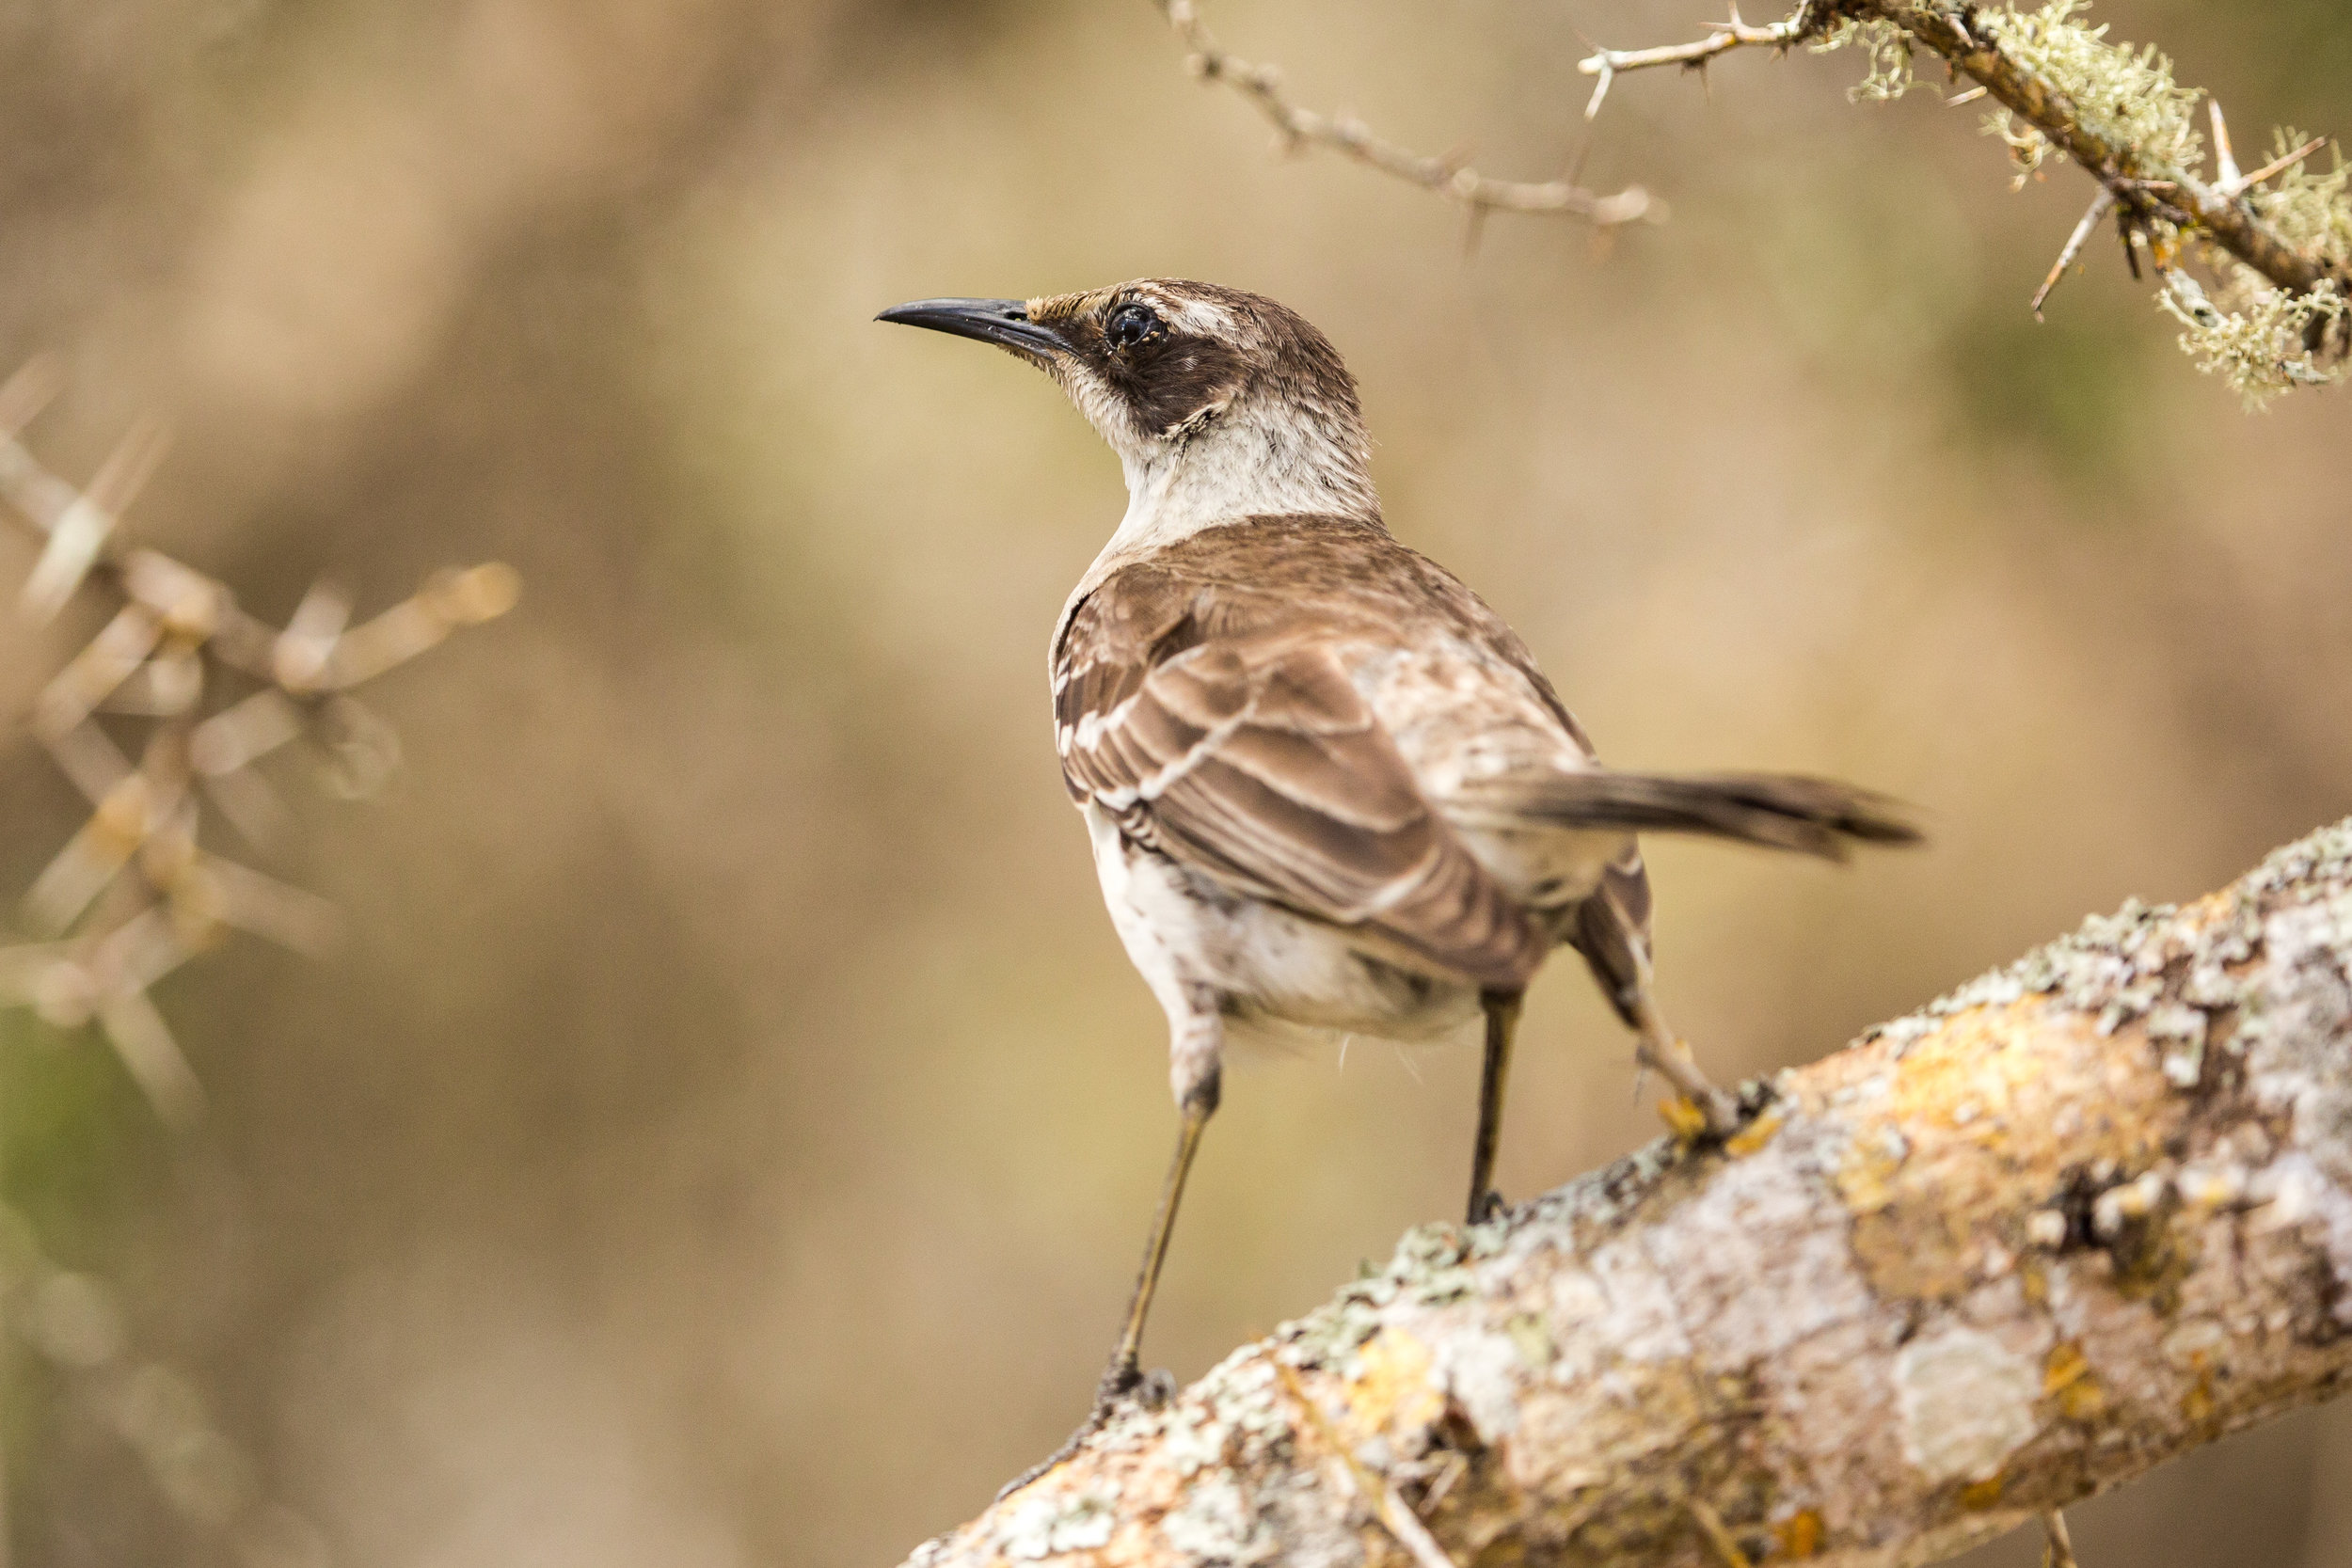 """The """"M.p. parvulus"""" subspecies of the endemic Galapagos mockingbird"""